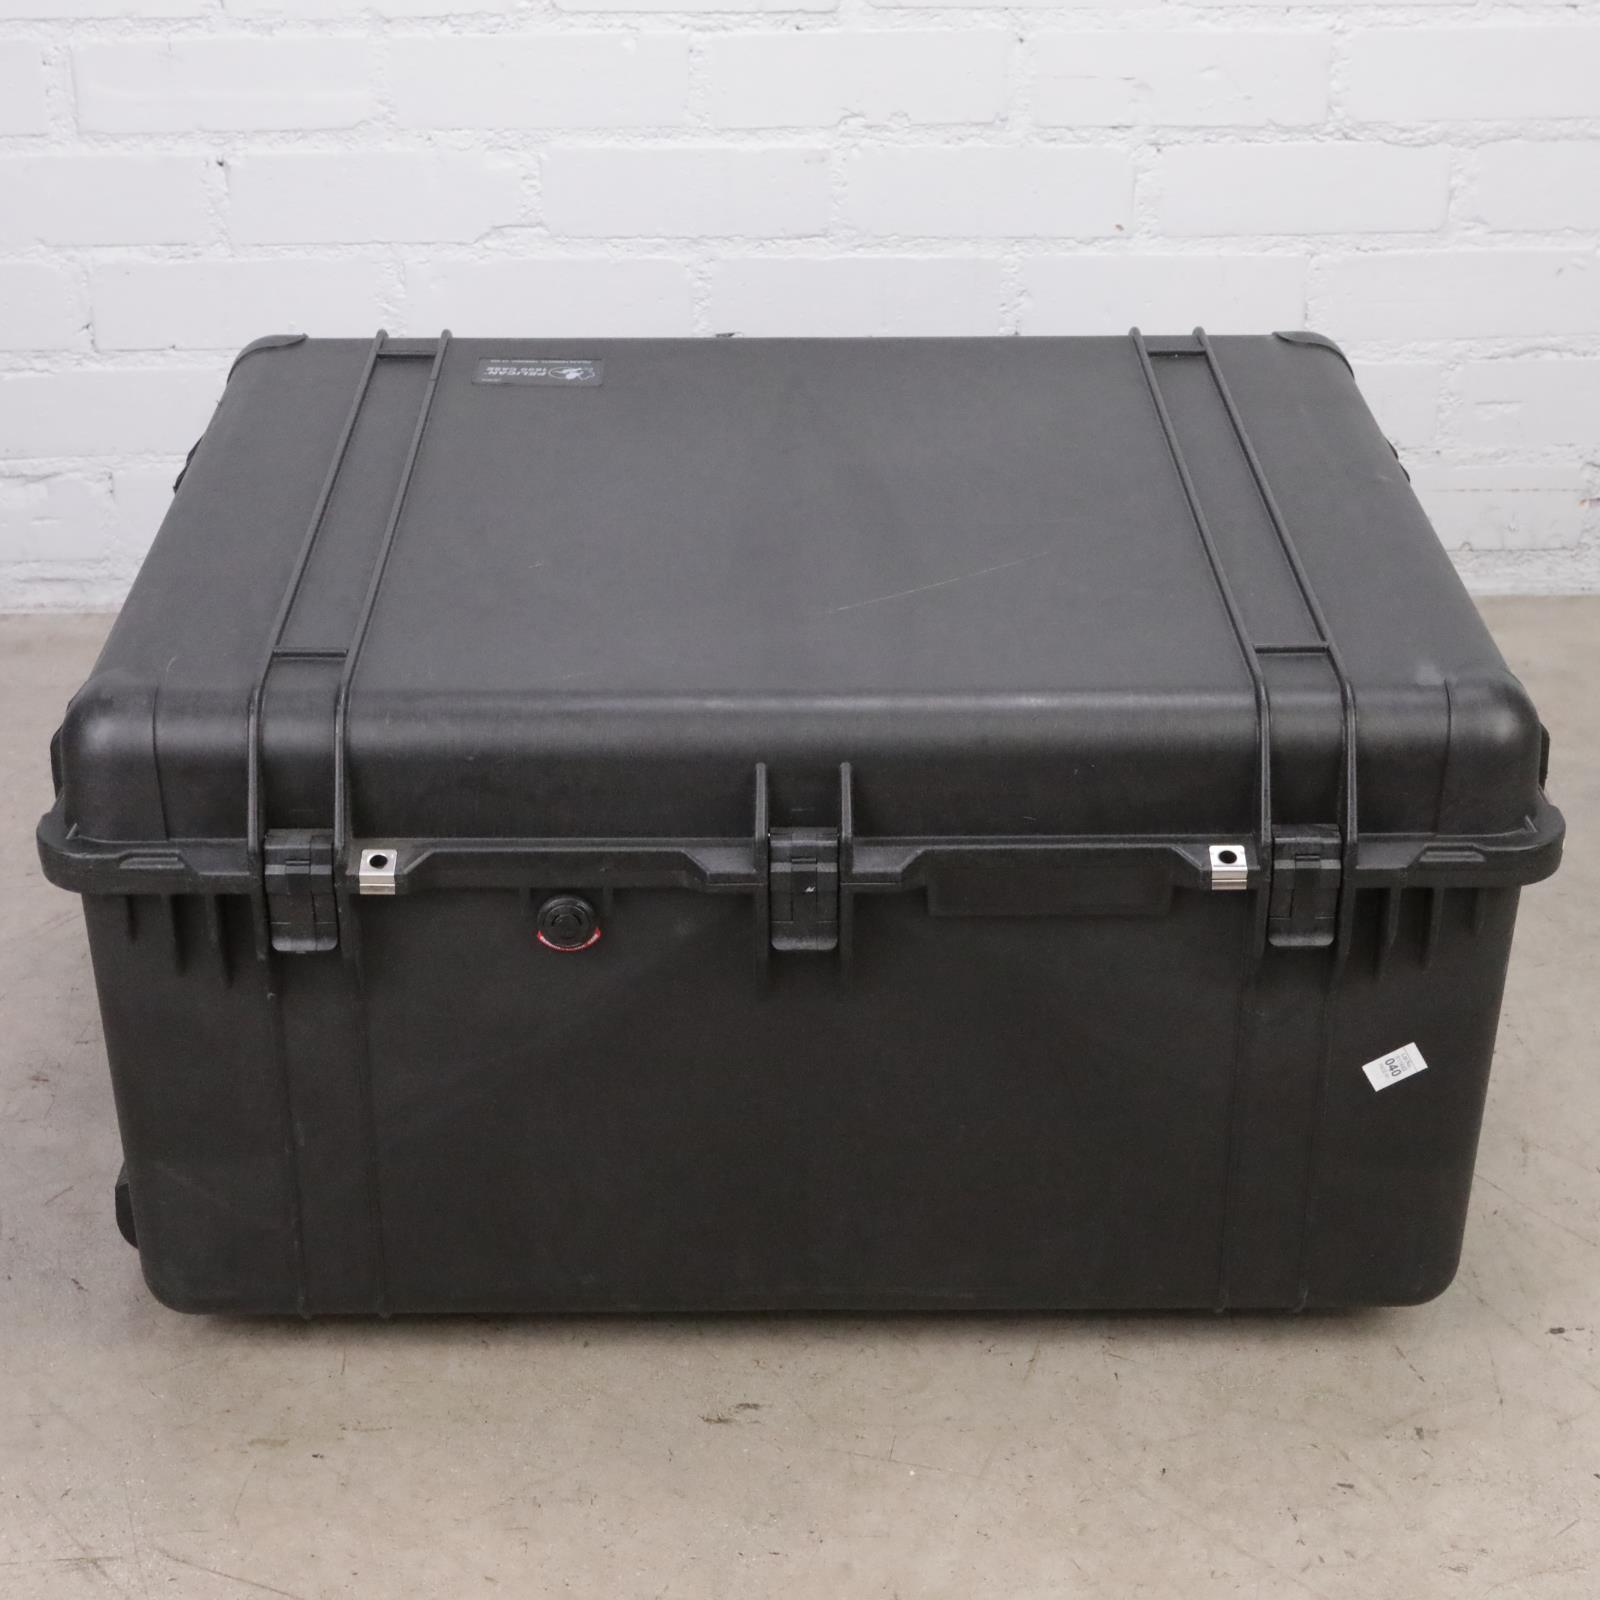 Pelican 1690 Protector Transport Case w/ Foam & Padded Dividers #44941